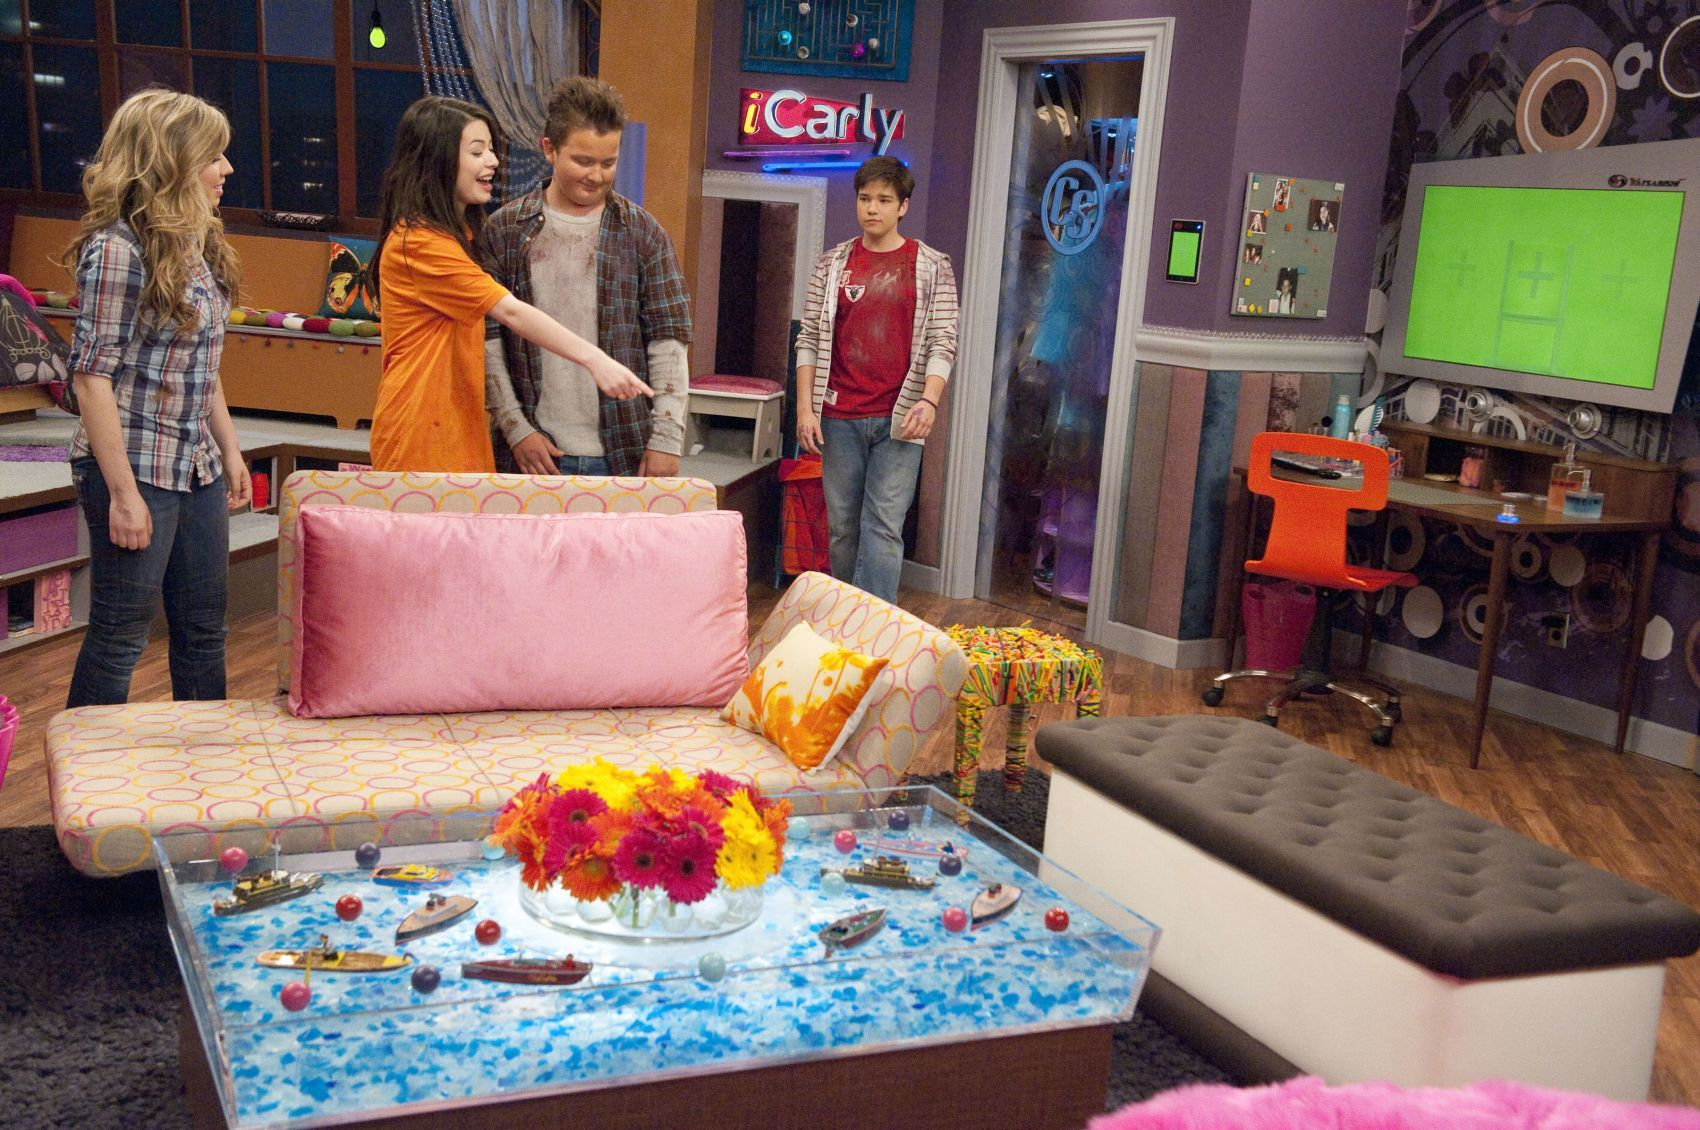 Exceptionnel Icarly Room   Google Search